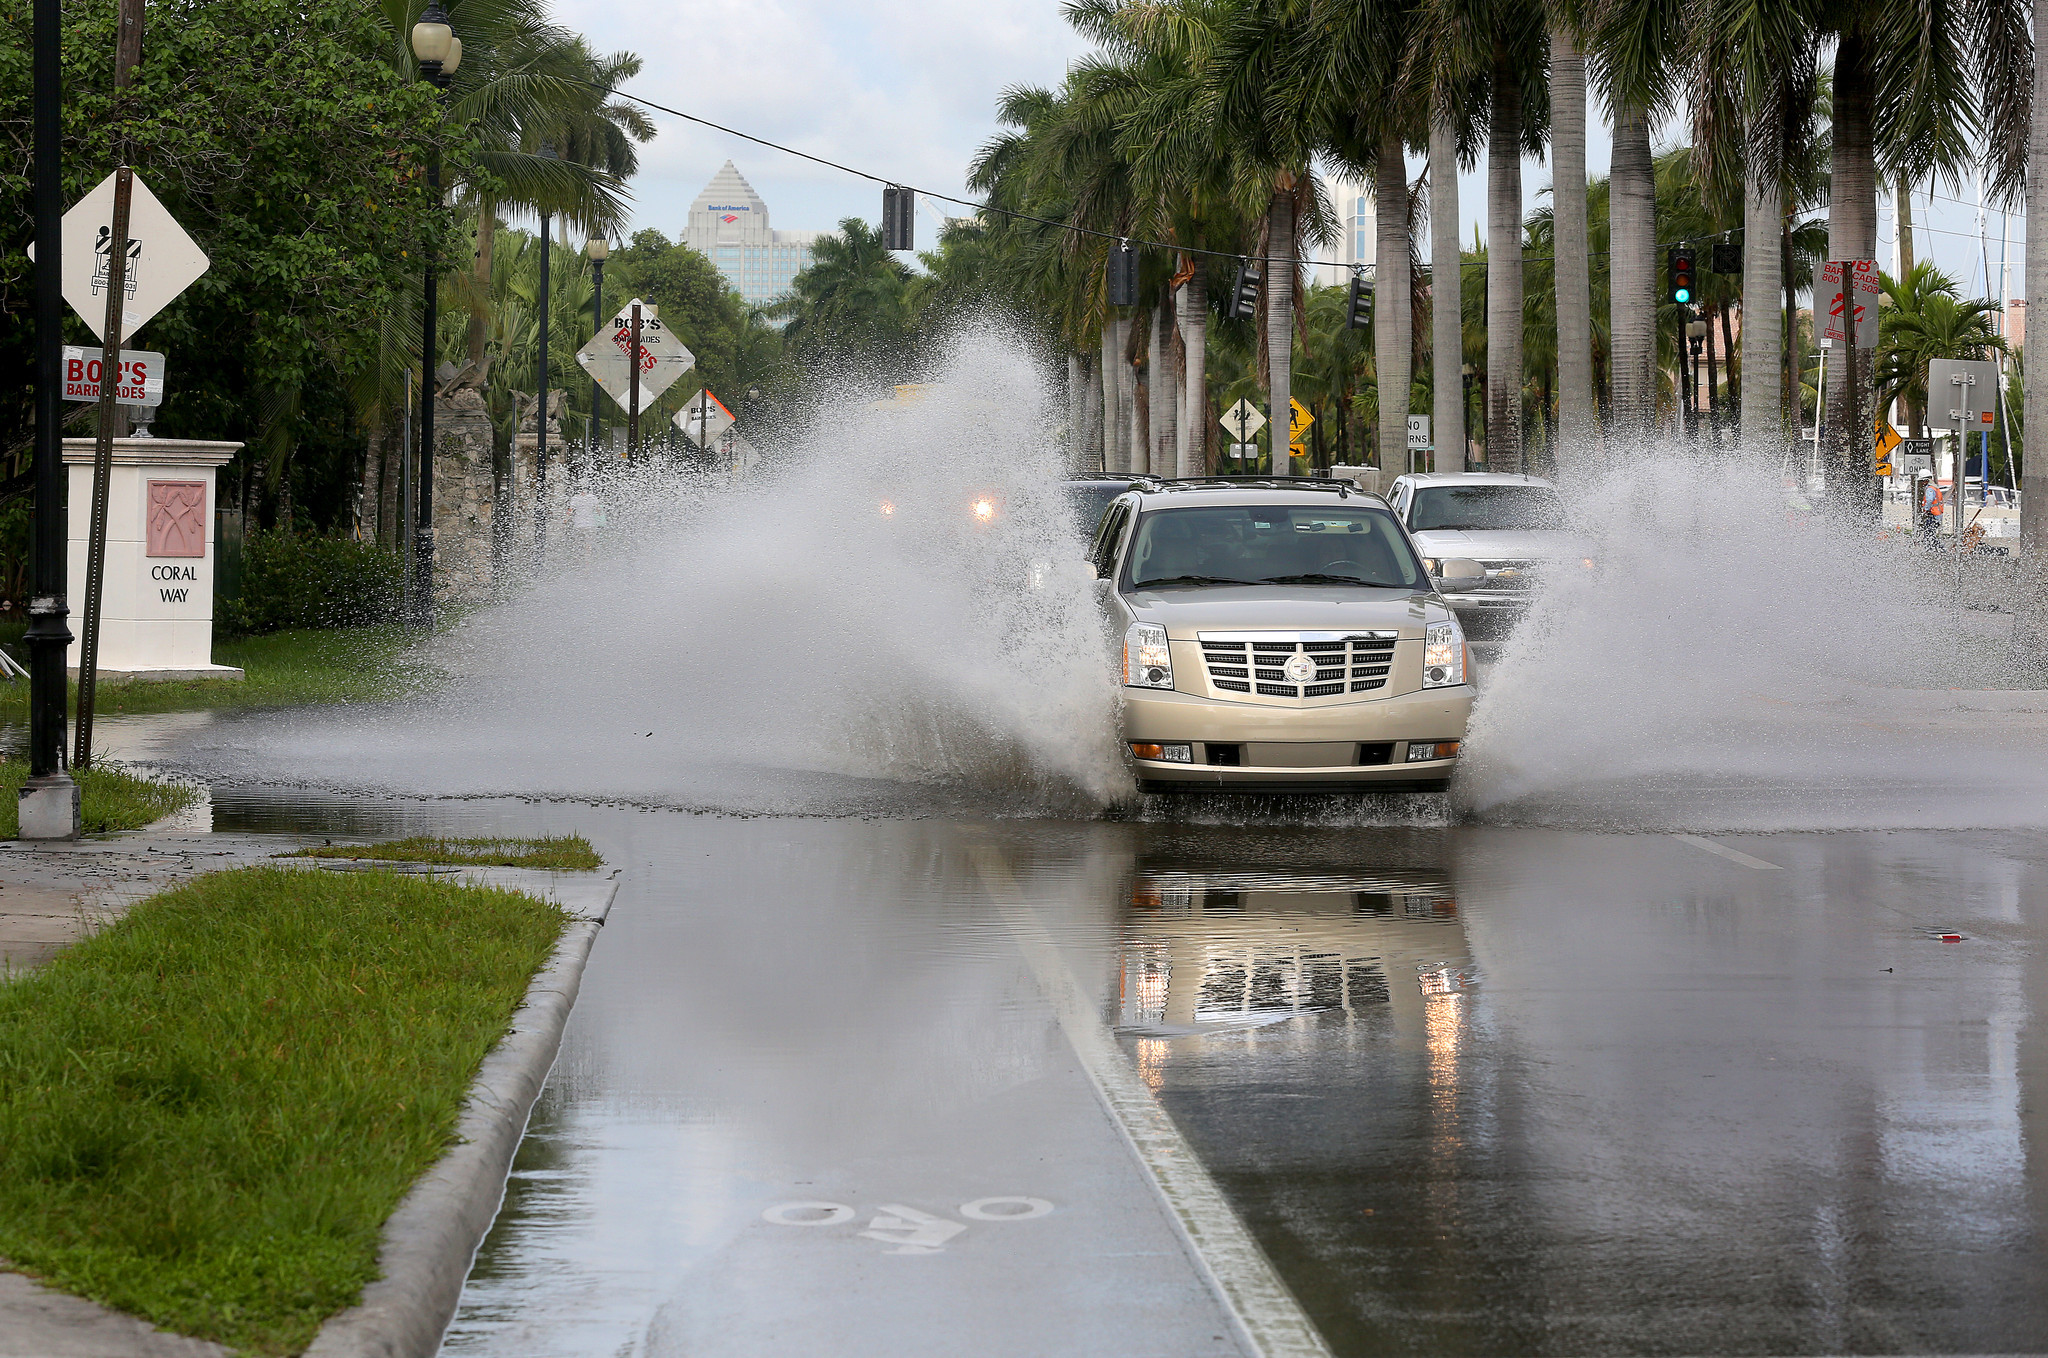 fl-king-tides-20150826 Motorists Advised to Use Caution in East Hollywood due to Street Flooding Caused by High Tides